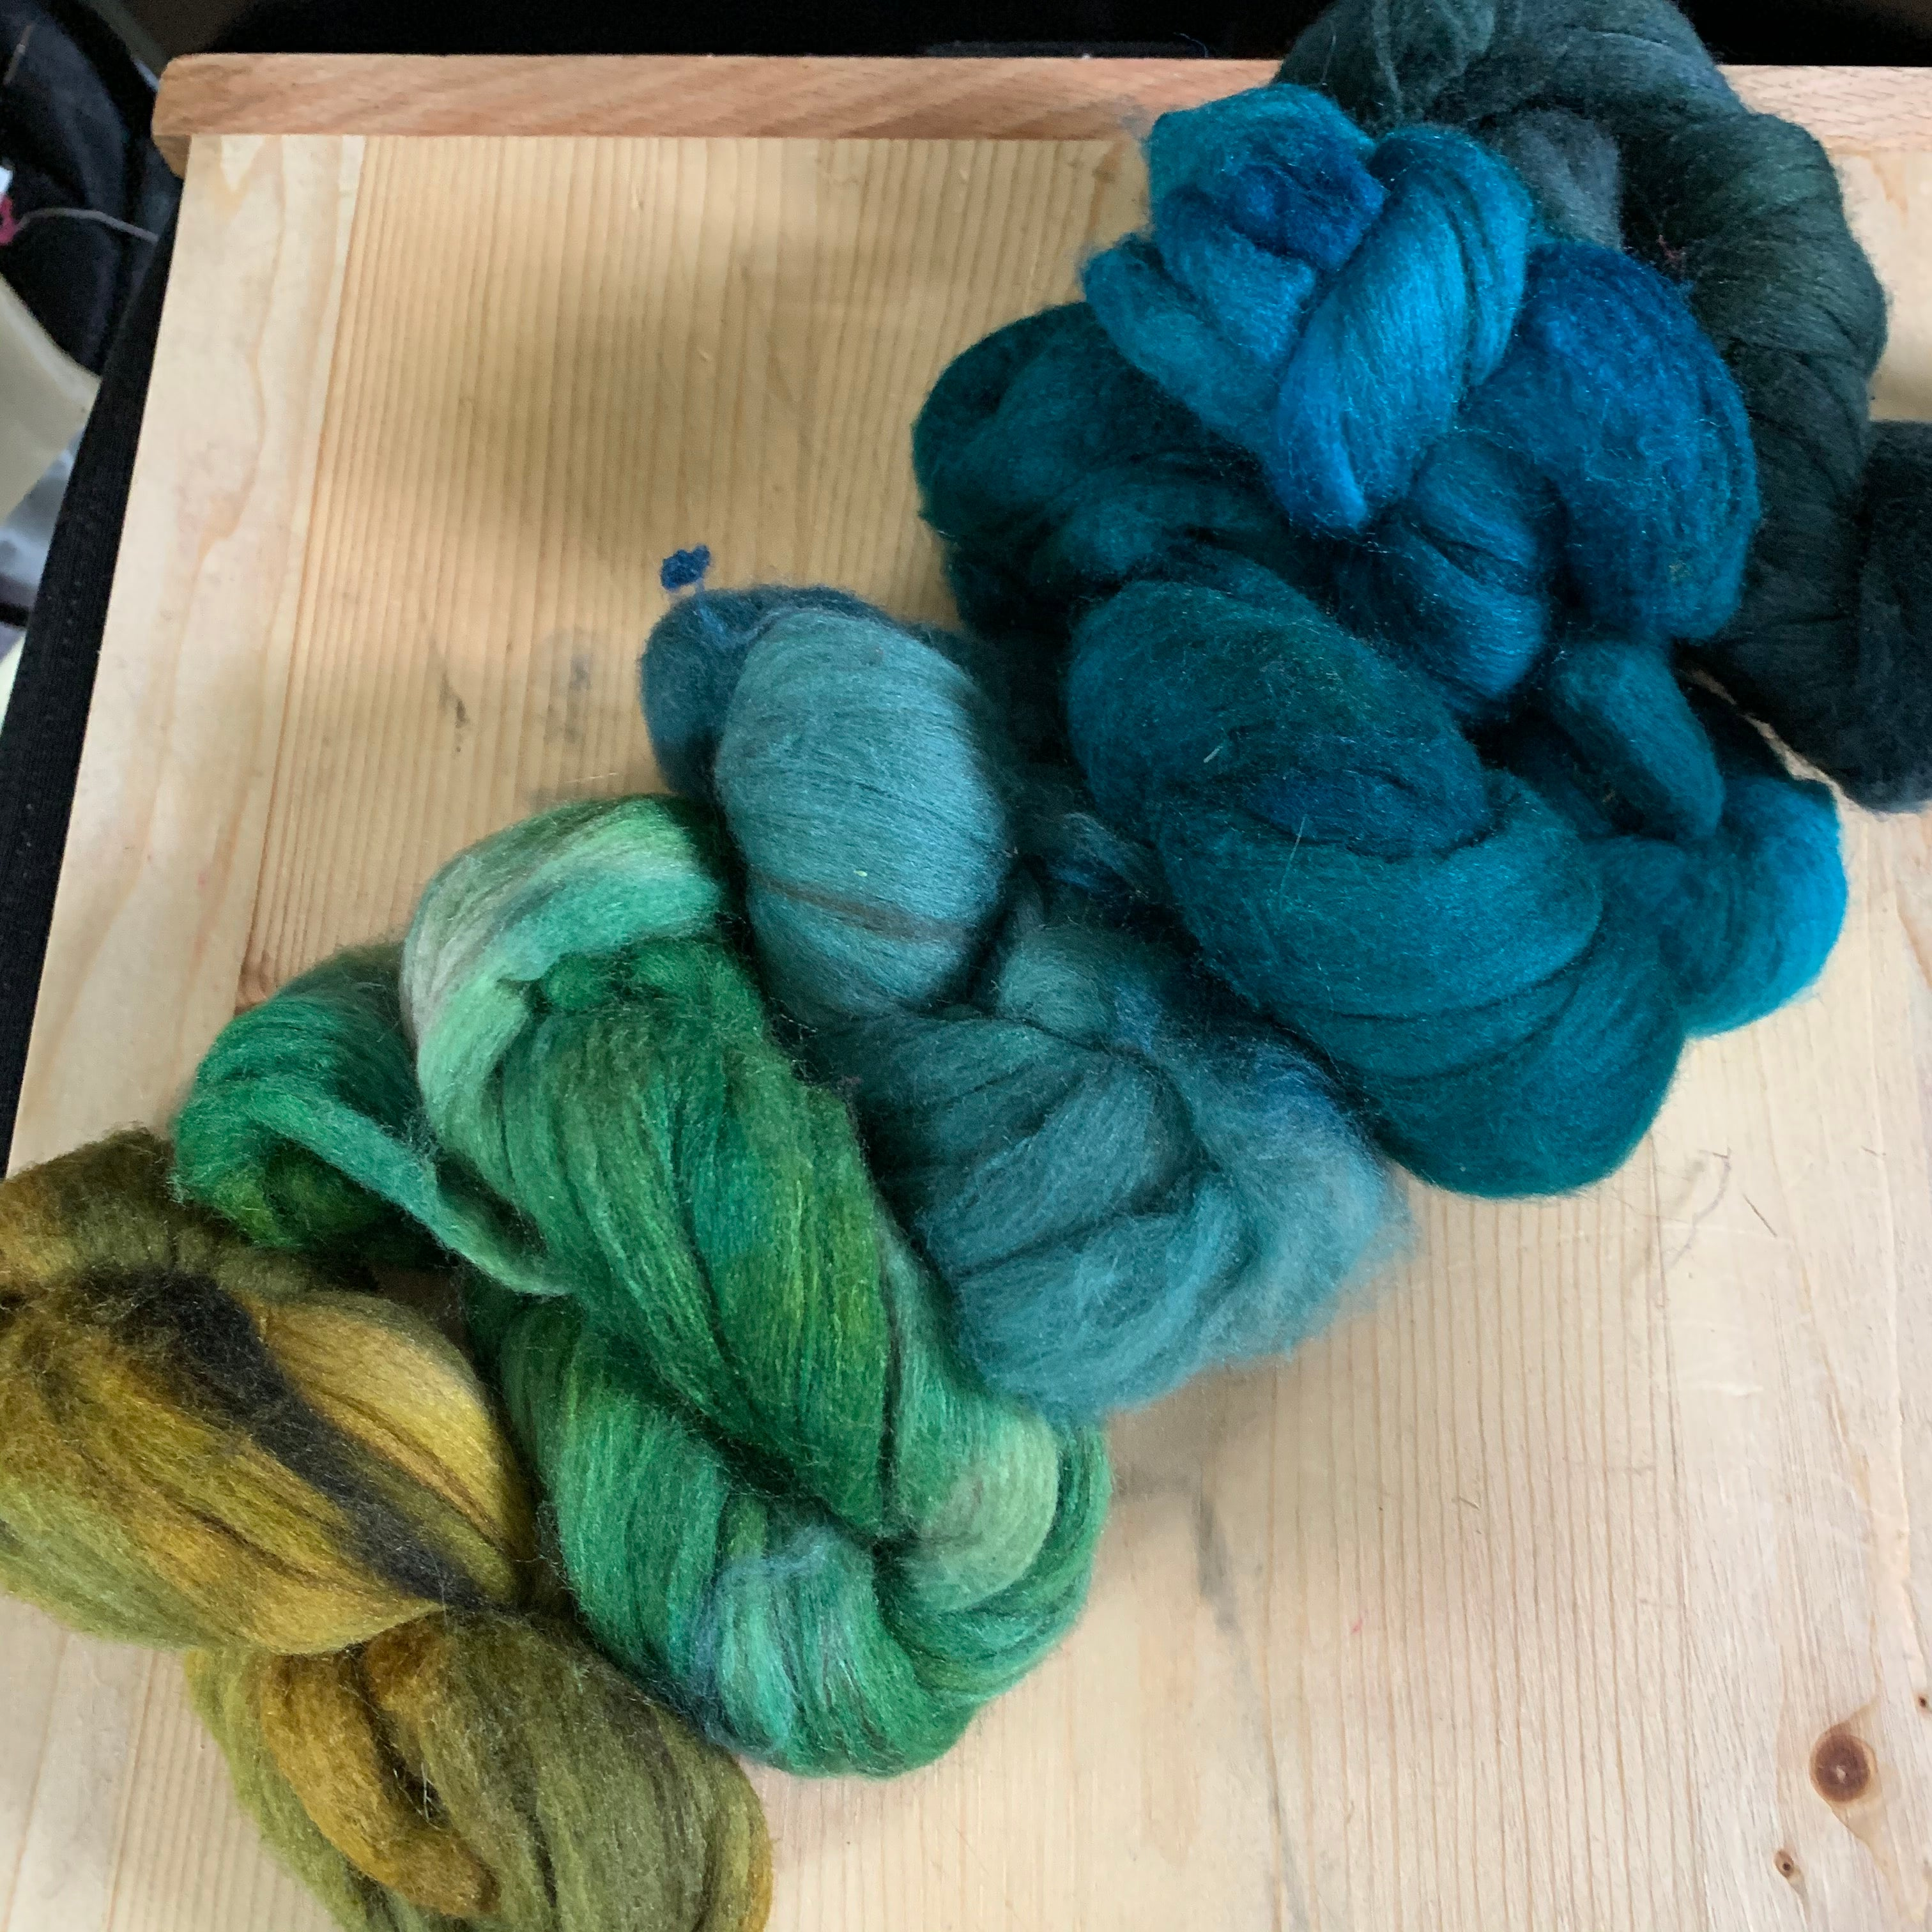 hand-dyed rambouillet yak silk, June 2020, yellows, greens and blues assortment